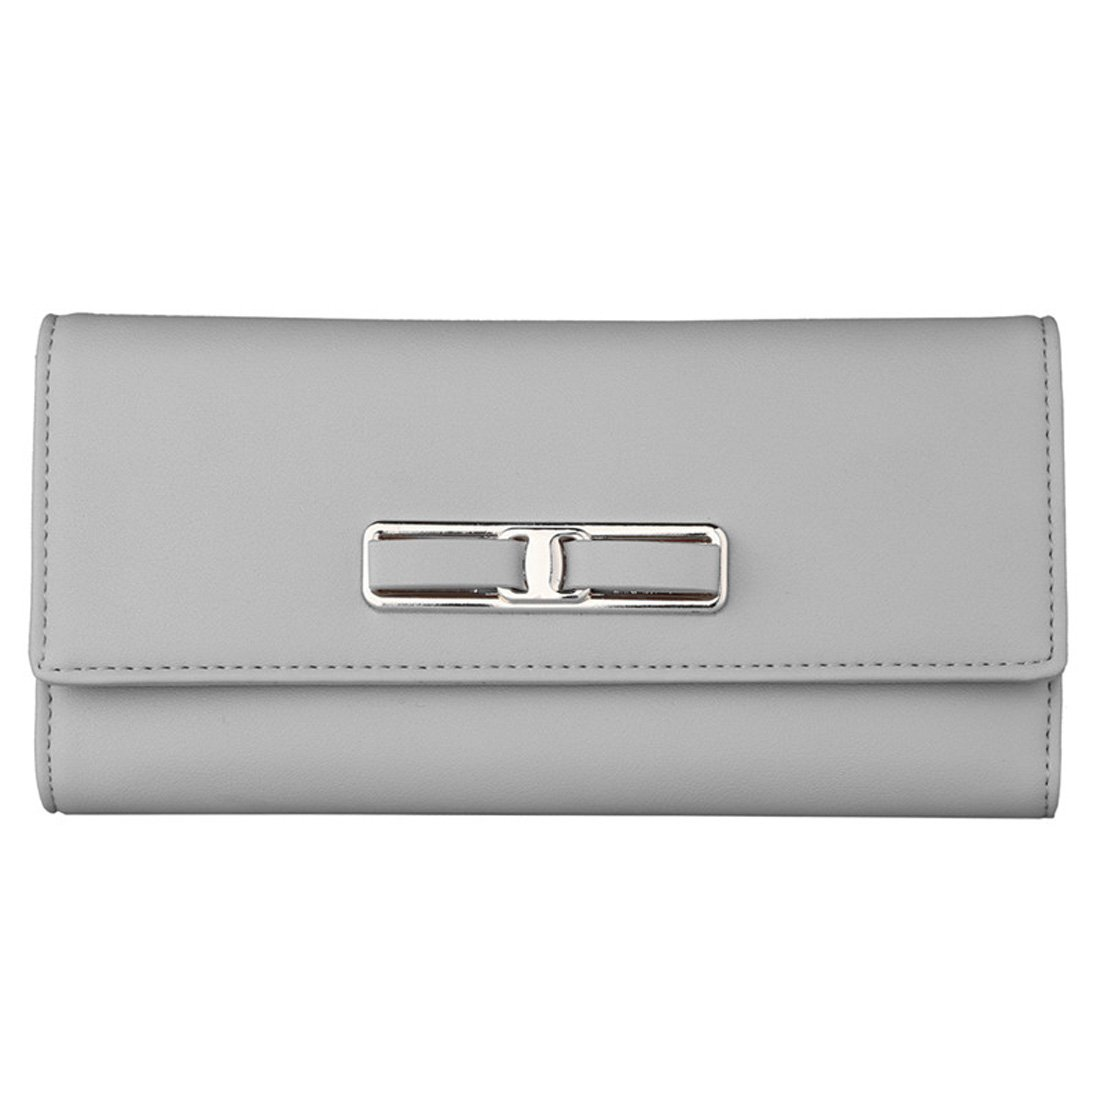 Women Leather Wallet Buckle Clutch Lady Long Purse Girl Zipper Elegant Handbag Card Holder(Grey)